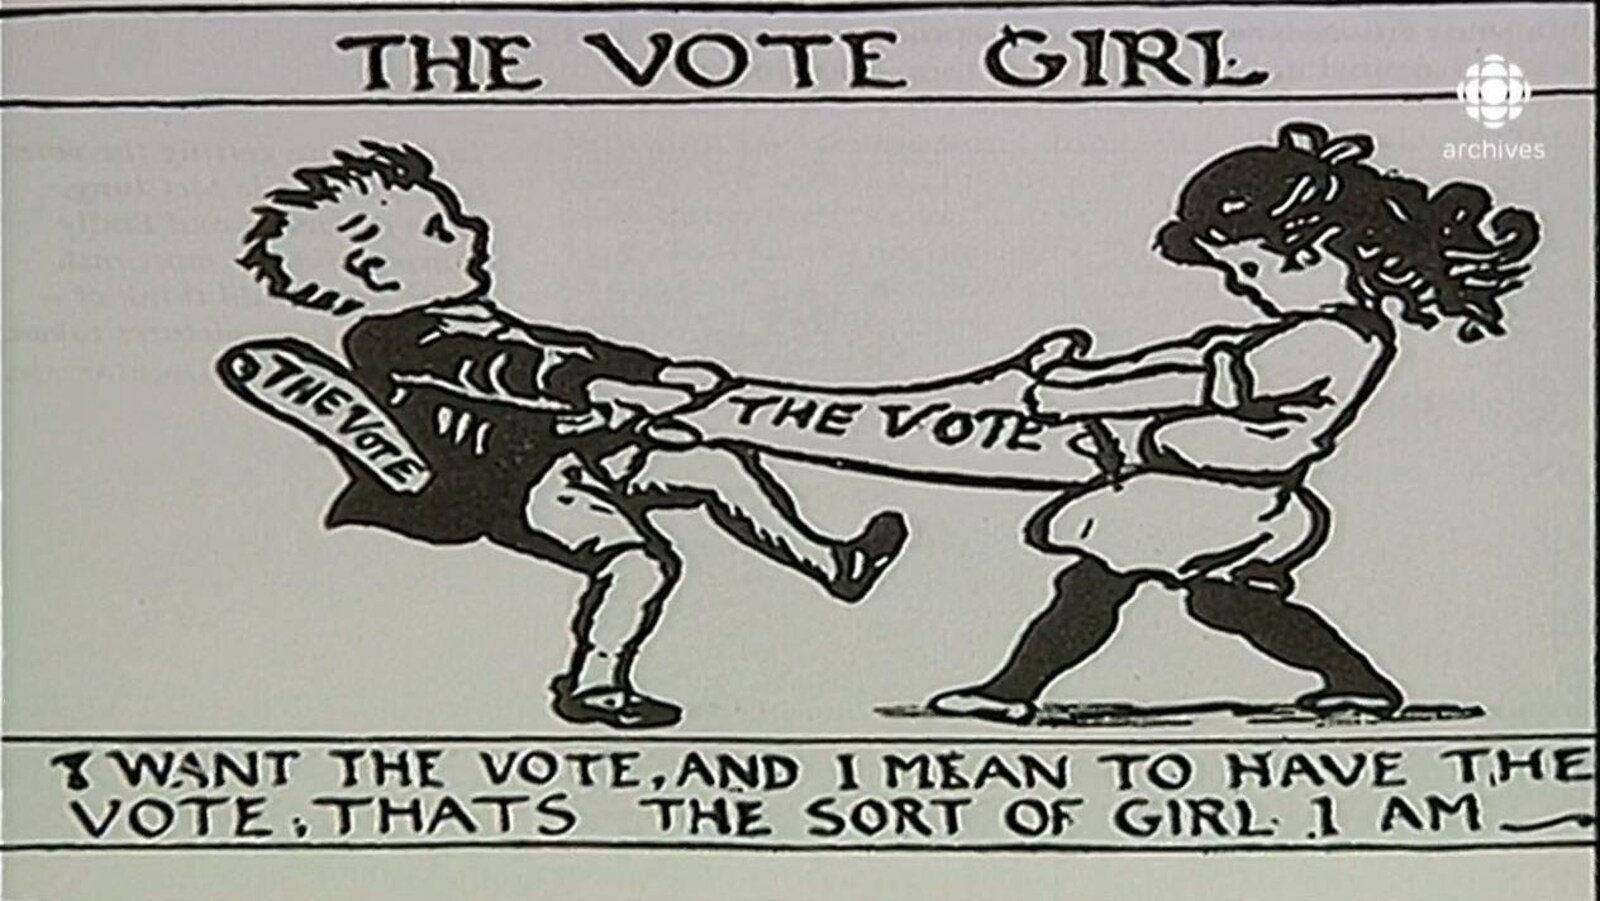 Caricature intitulé de «The Vote Girl» illustrant une jeune fille qui tire violemment sur un bordereau de vote, retenu par un garçon. Sous la caricature, le commentaire suivant: «I want the vote, and I mean to have the vote, thats the sort of girl I am».